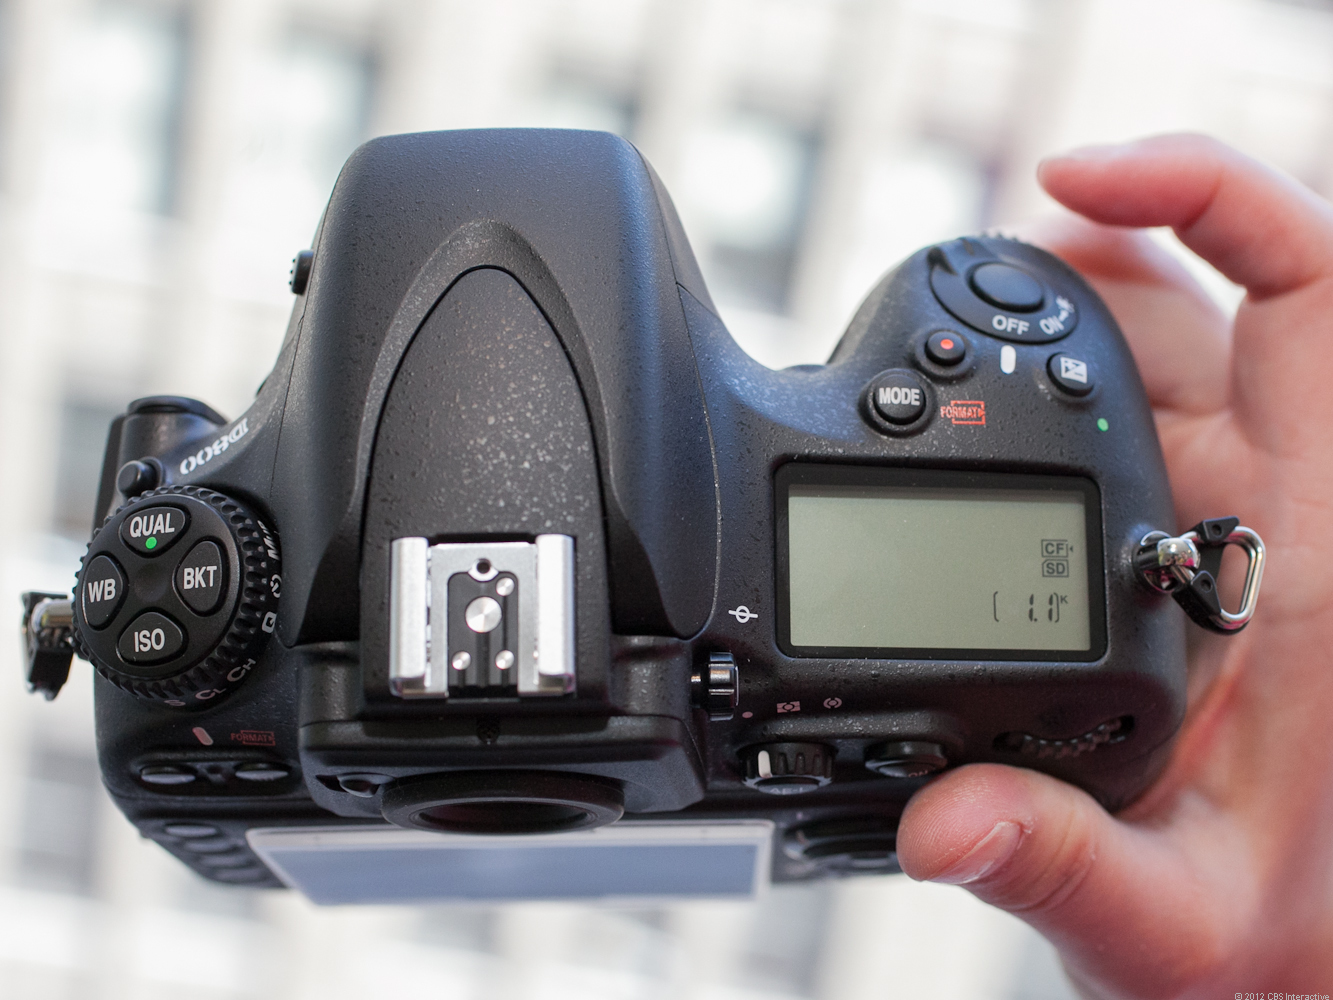 The top of the Nikon D800